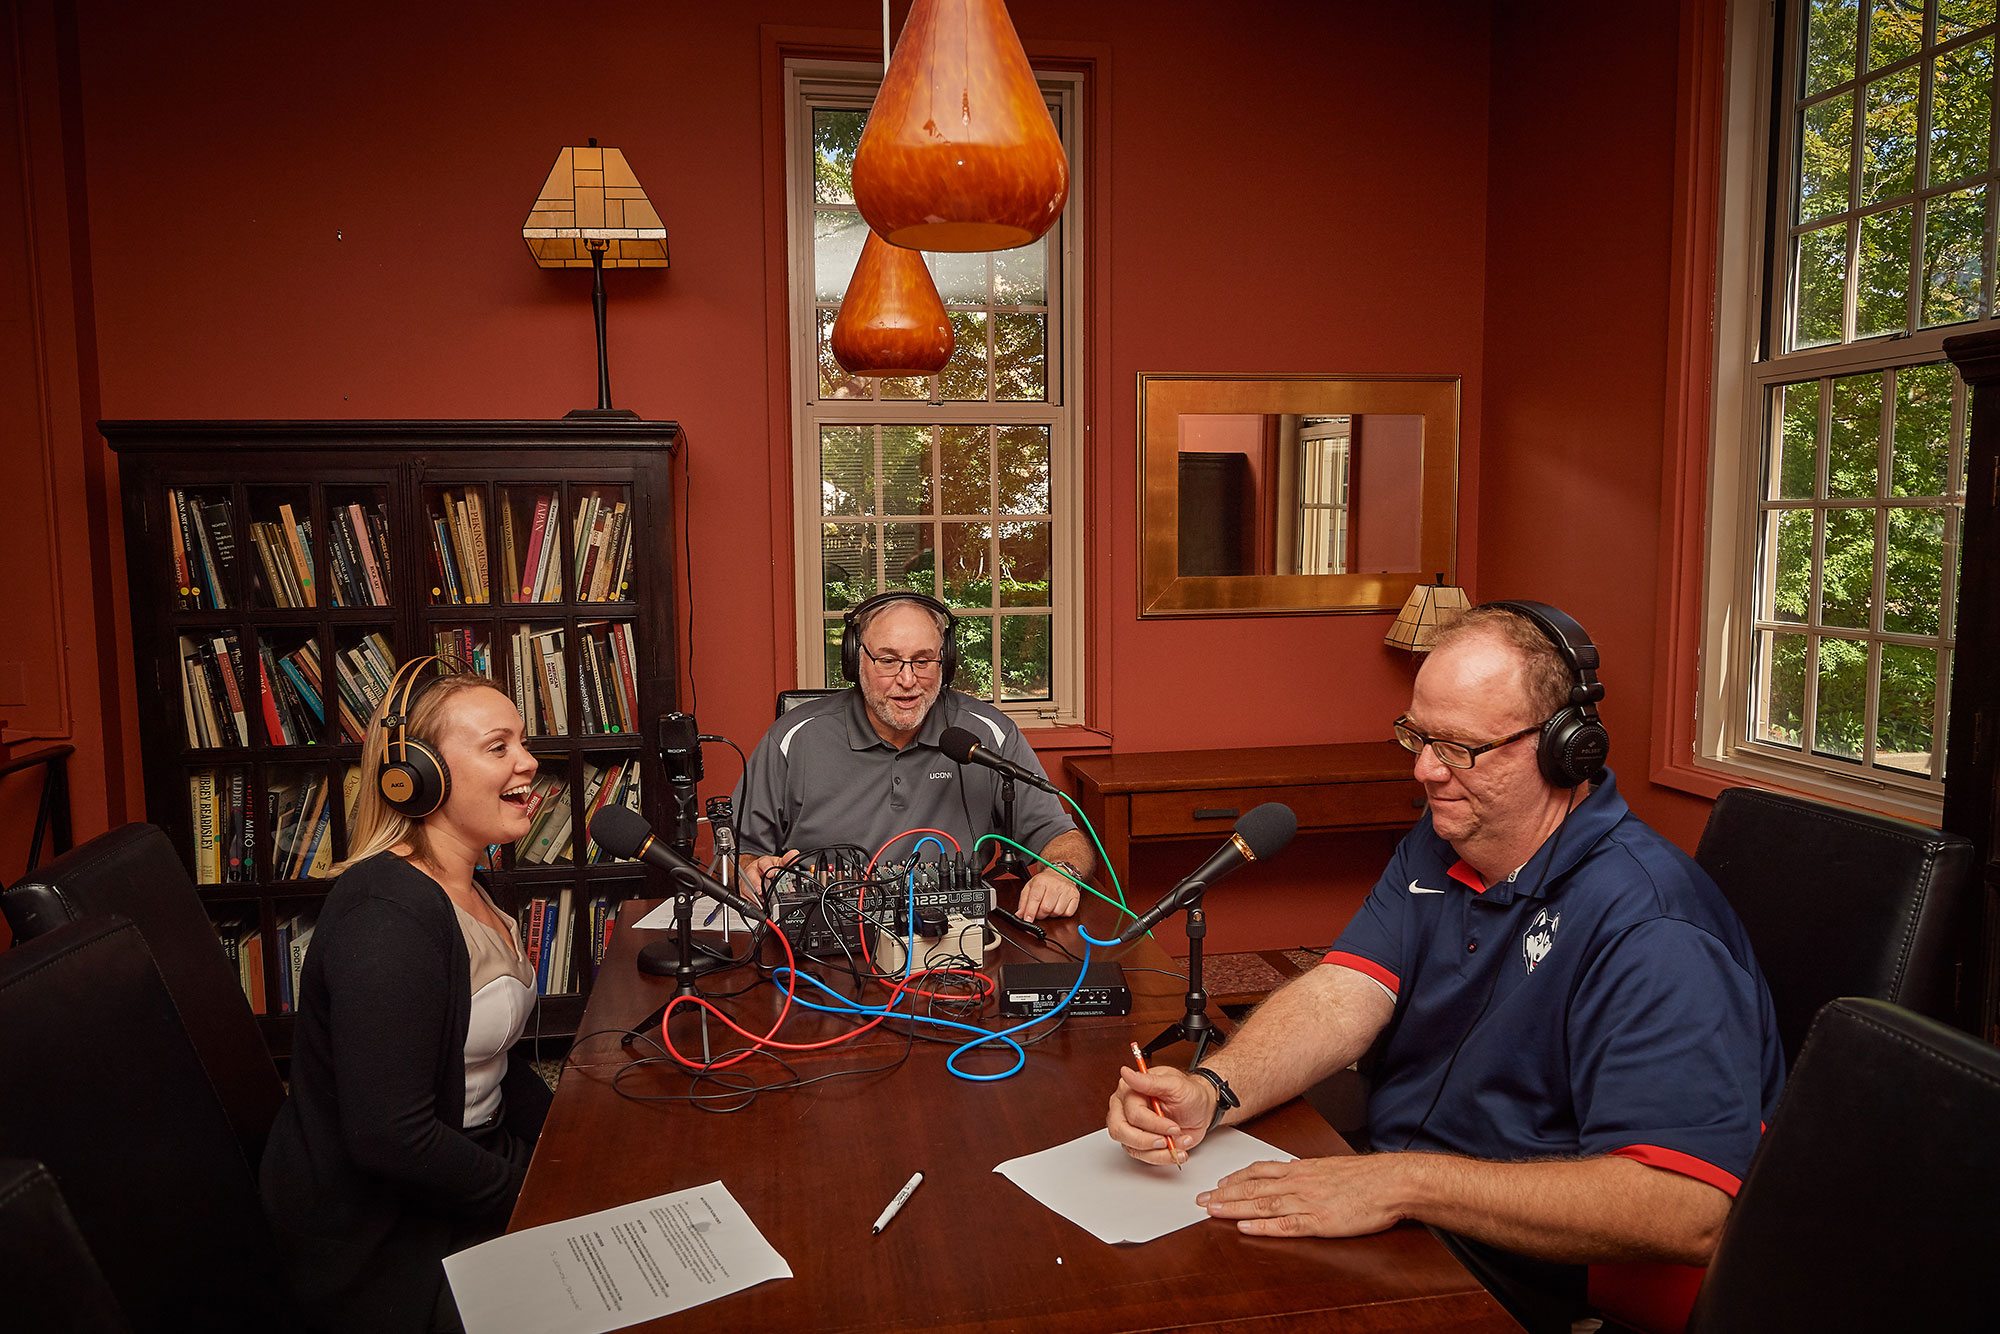 Bartucca, Best, and Breen record episode # 15 of their UConn 360 podcast